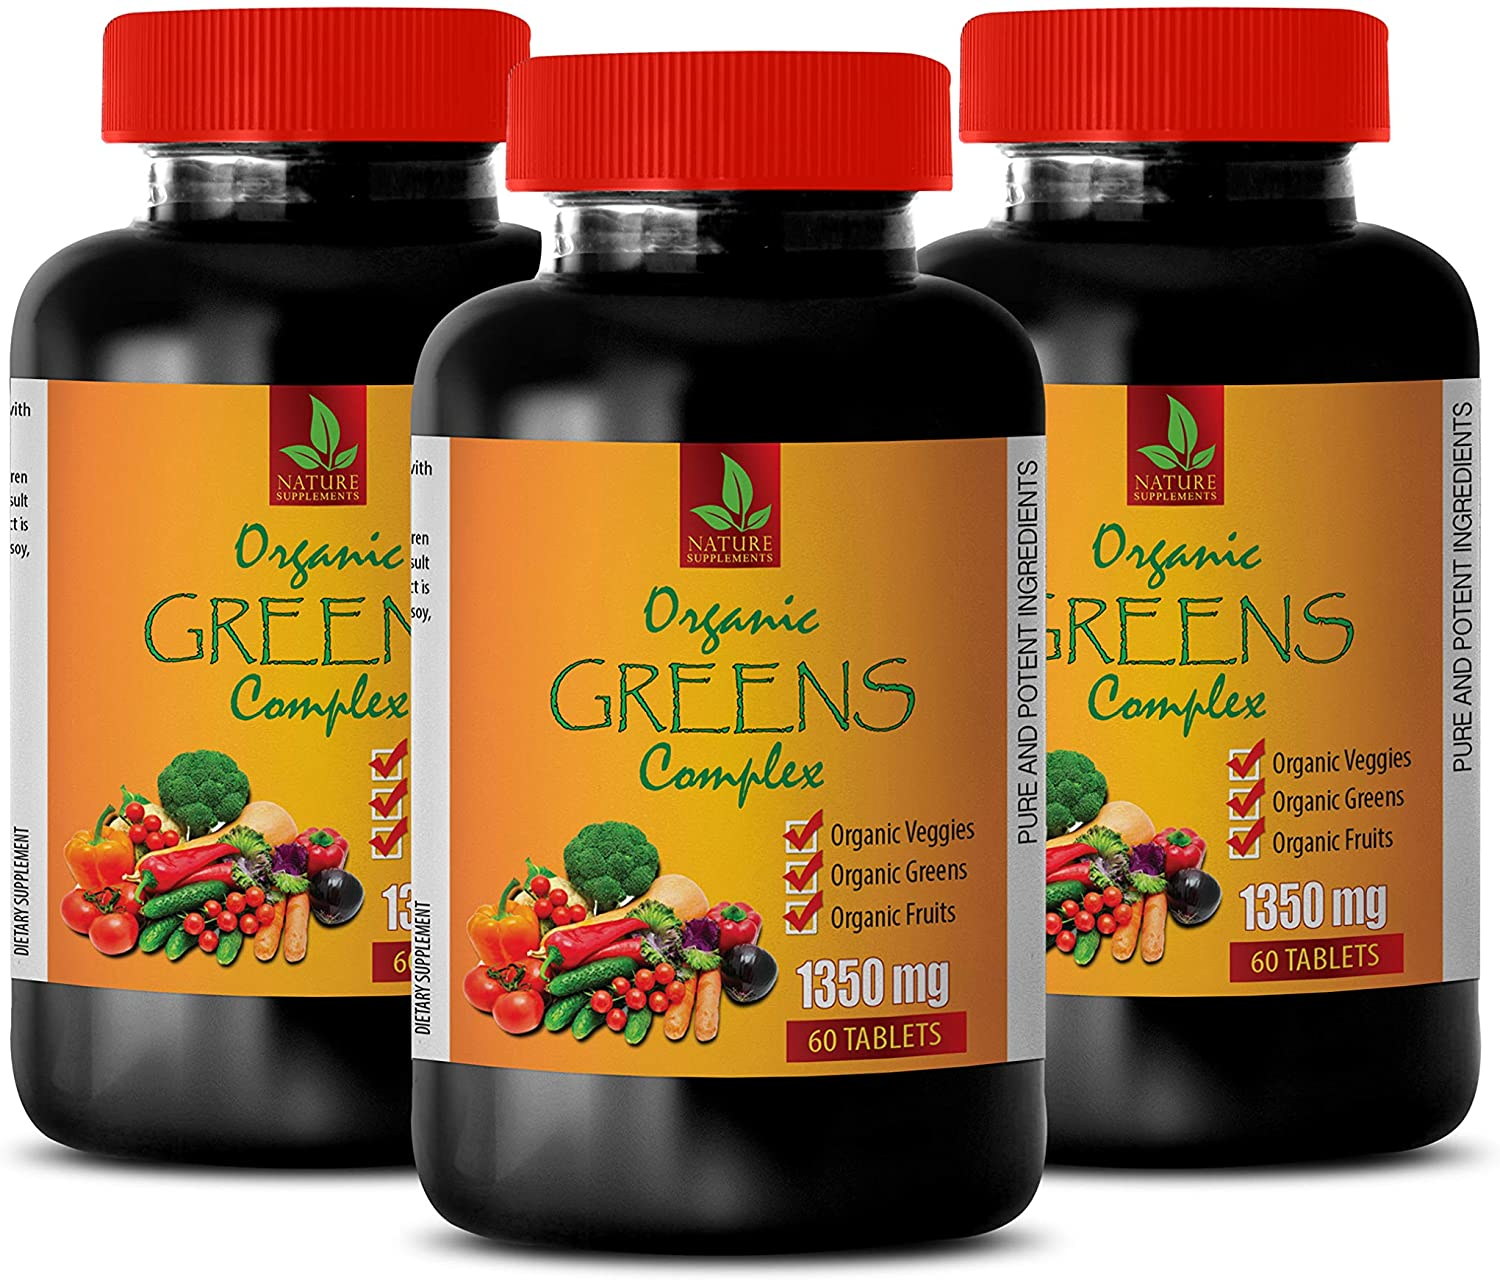 Brain and Memory Power Boost - Greens Complex Organic 1350 MG - Raspberry Weight Loss Pills - 3 Bottles 180 Tablets